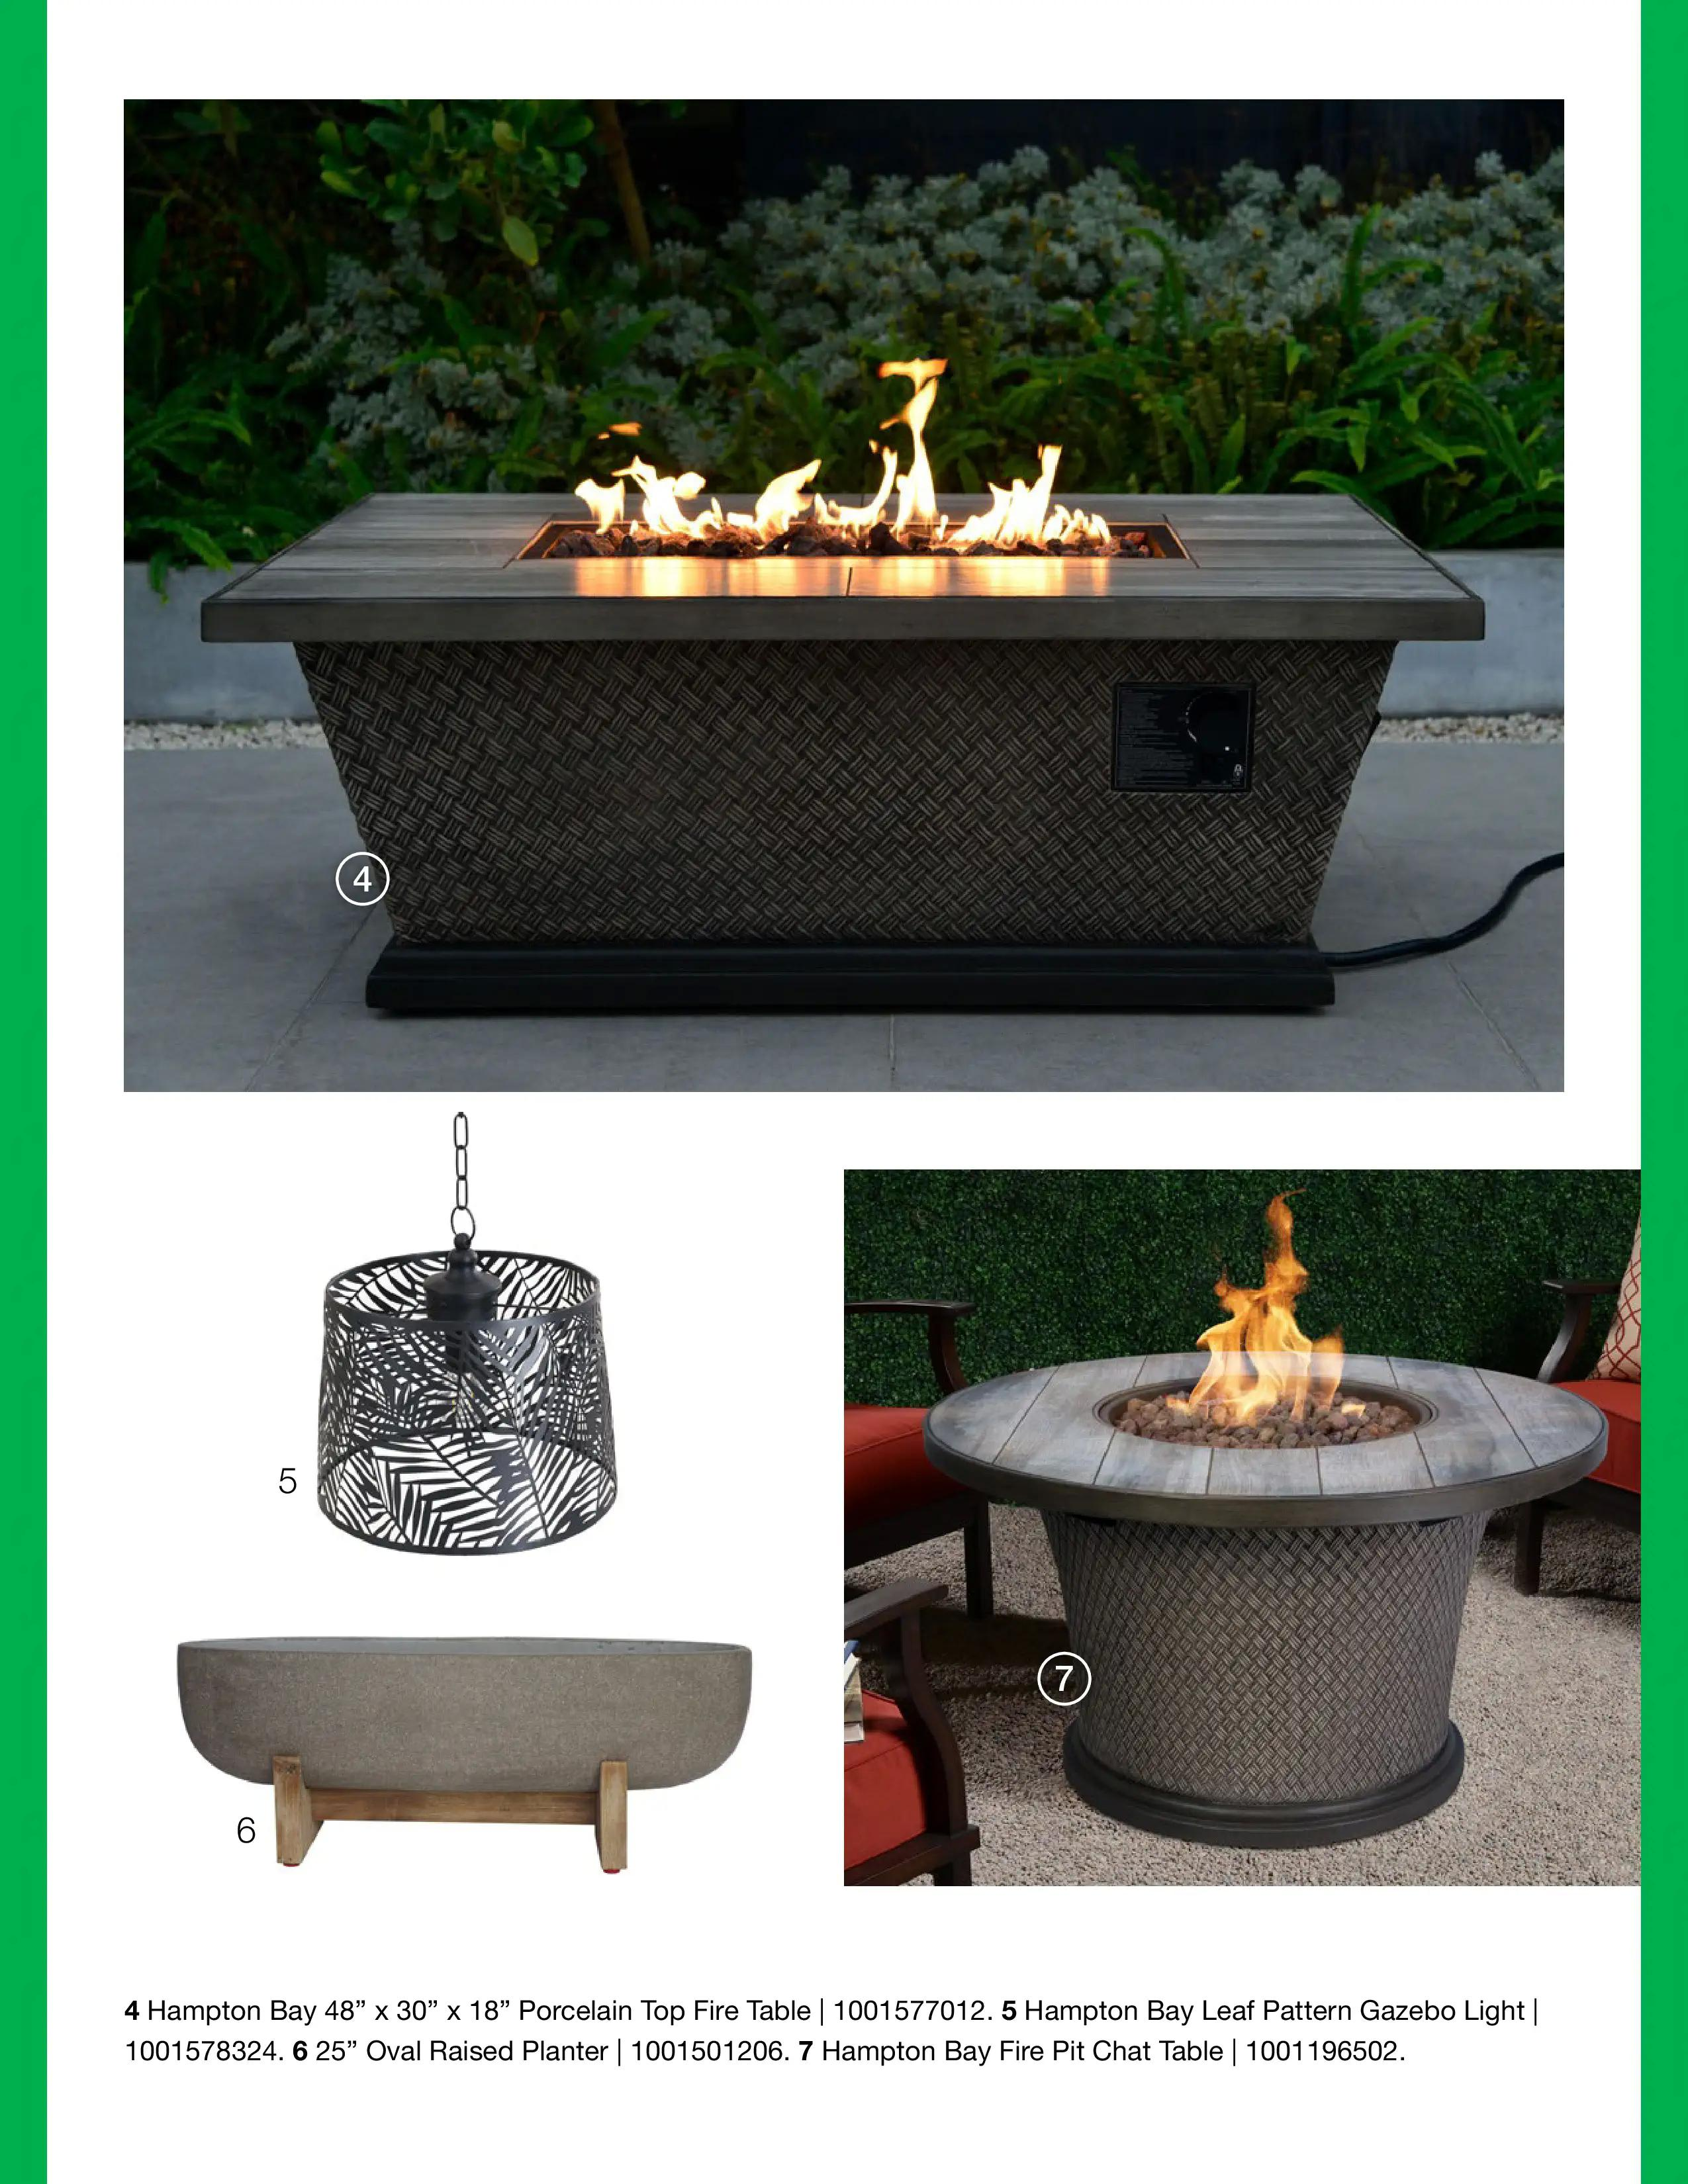 Home Depot - Outdoor Living - Page 8